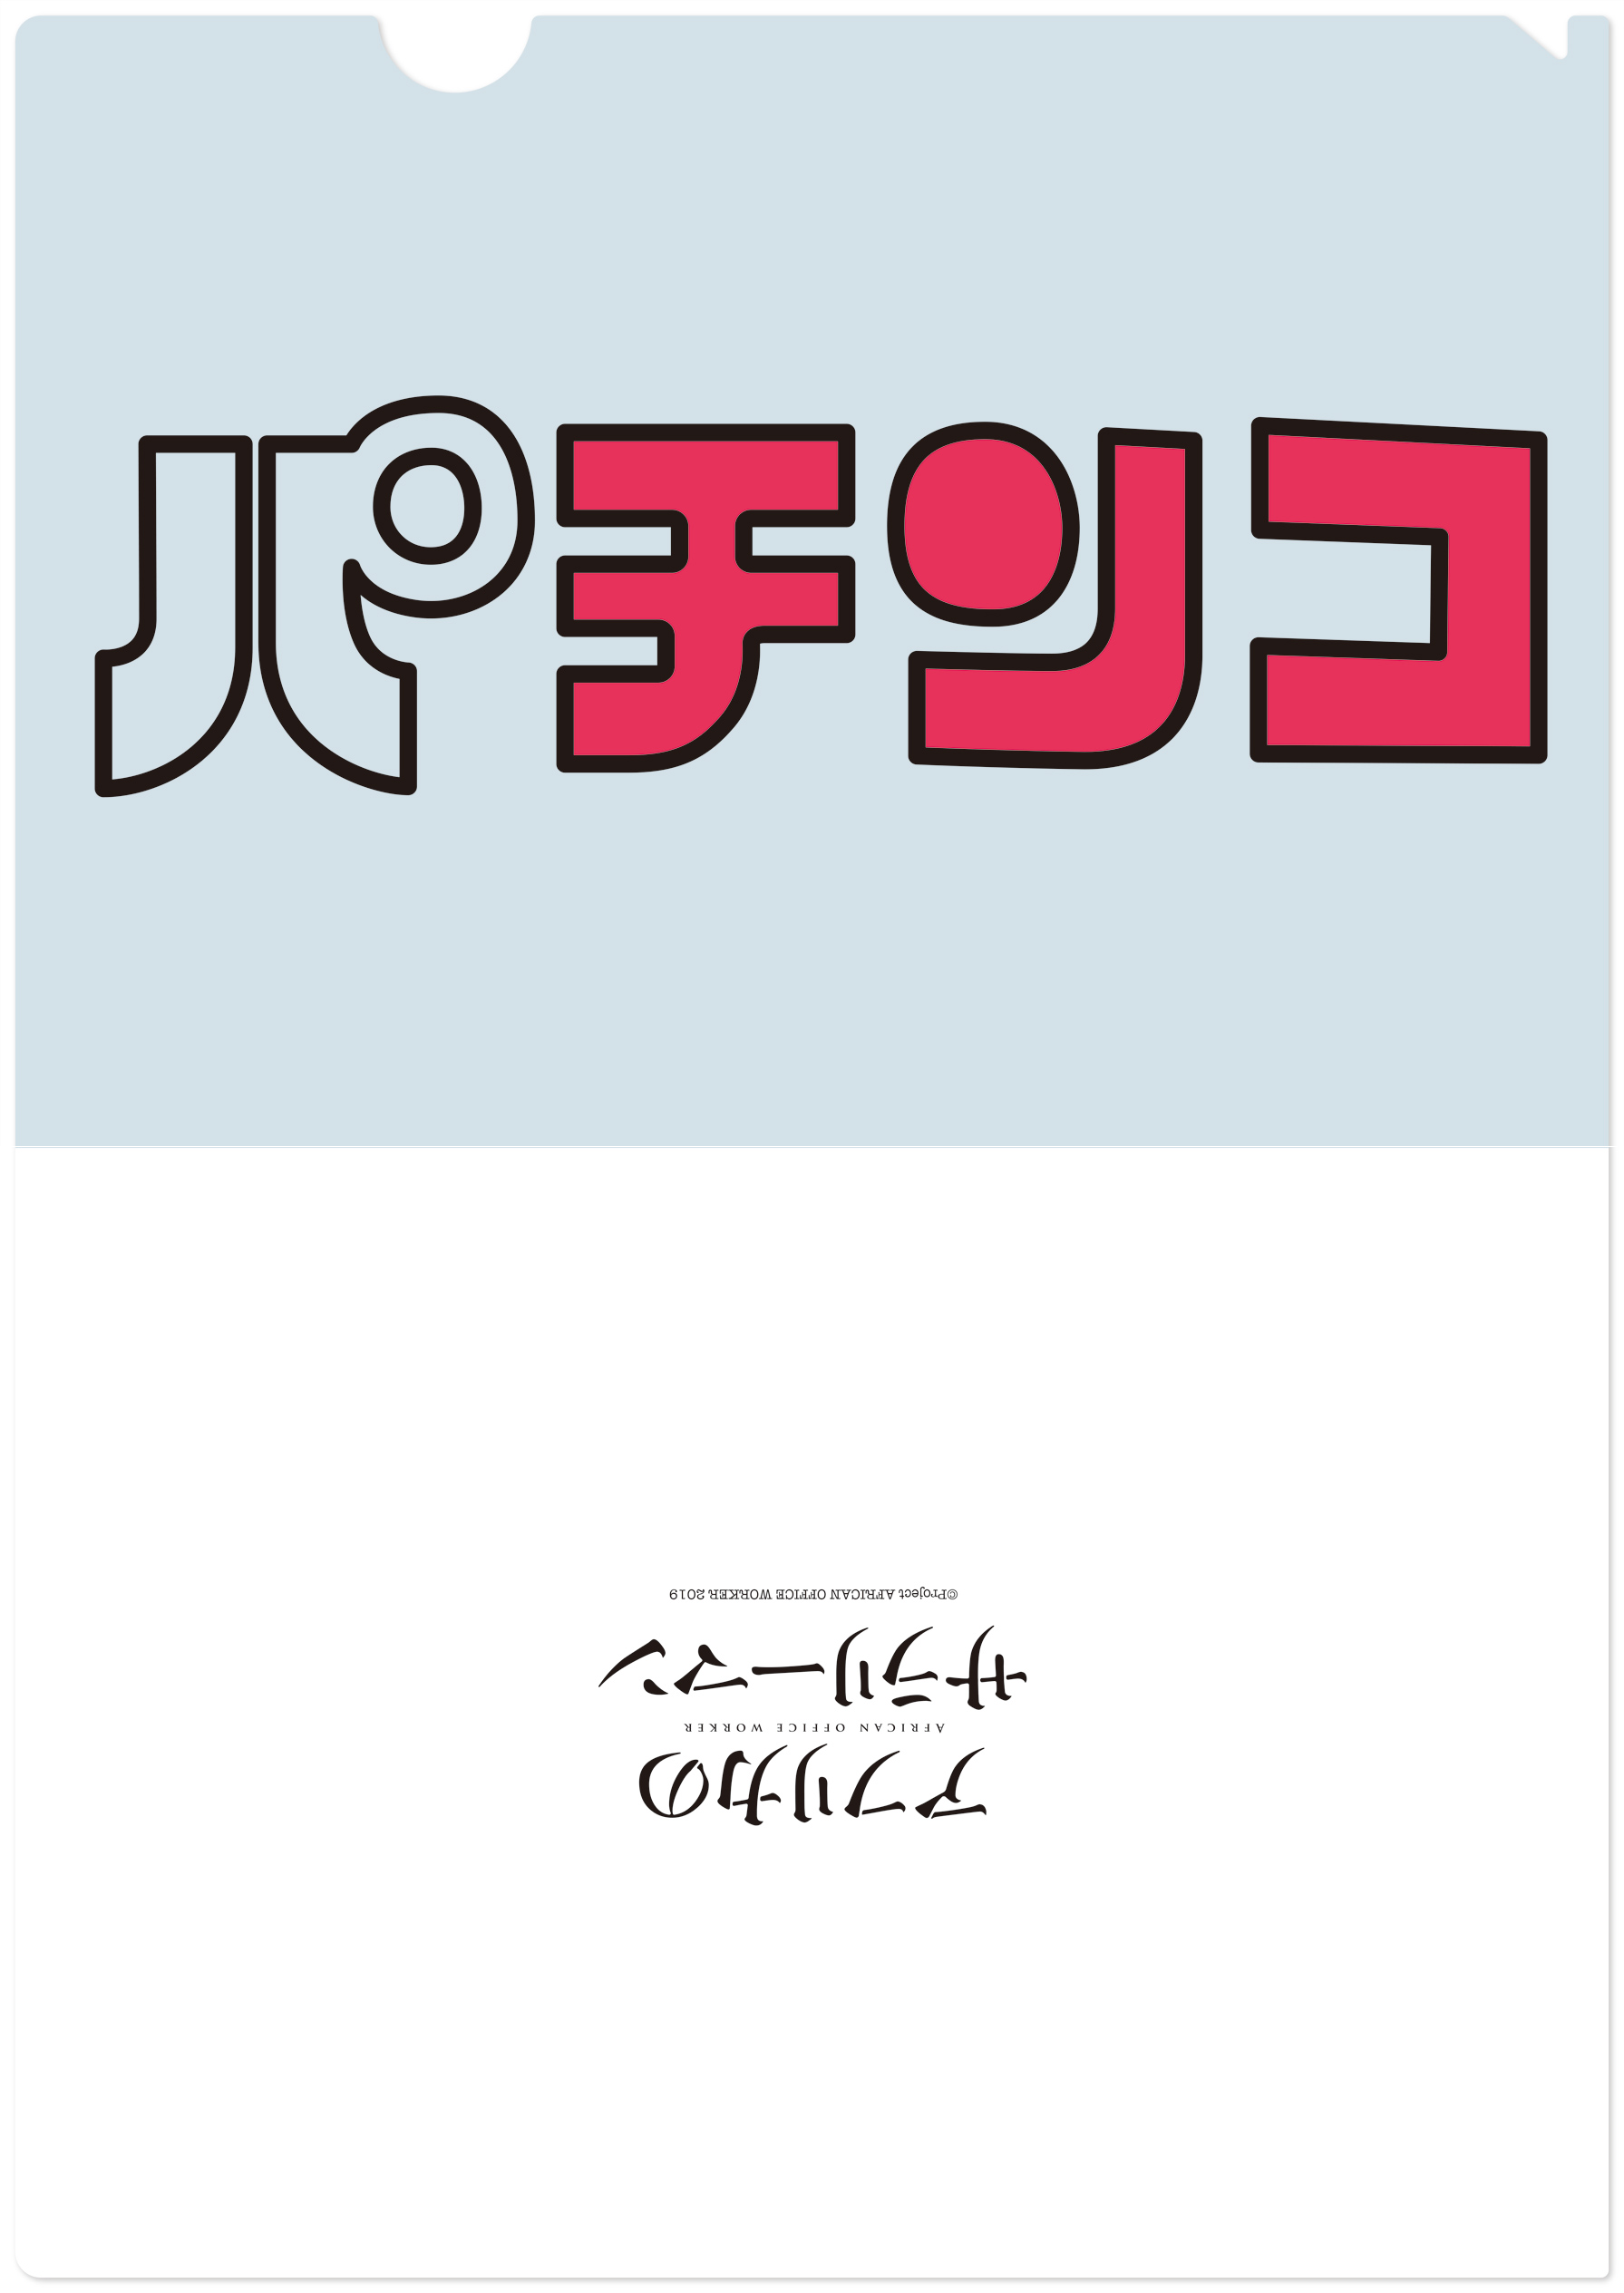 ClearFile_1